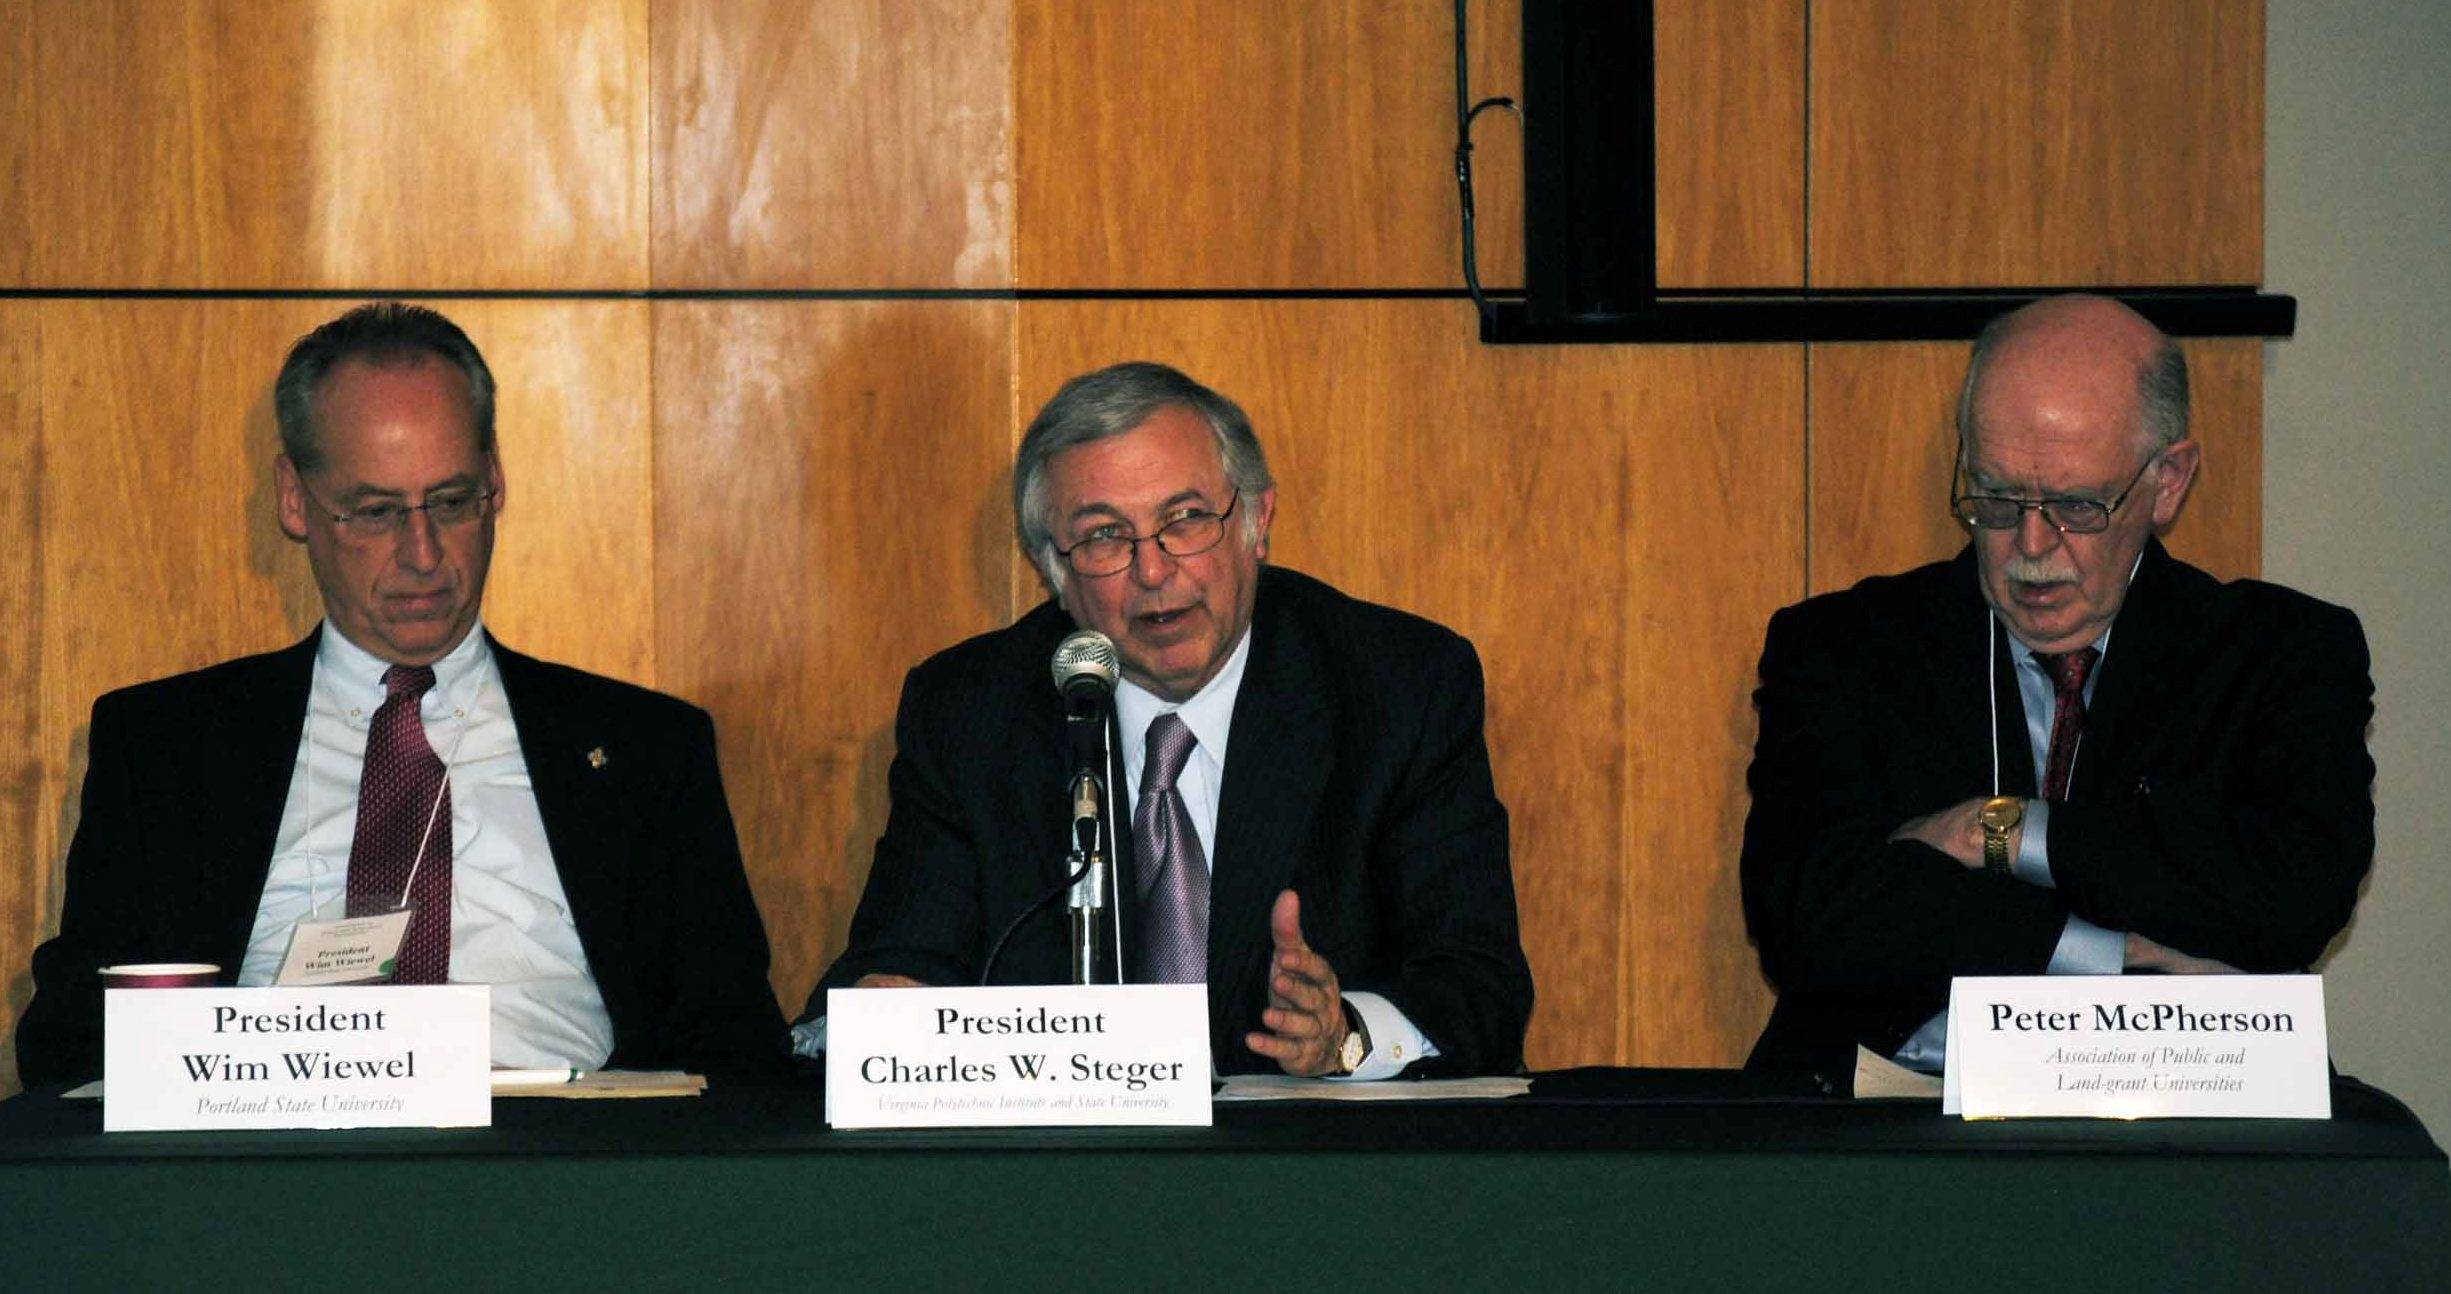 Charles Steger, Wim Wiewel and Peter McPherson speak during forum